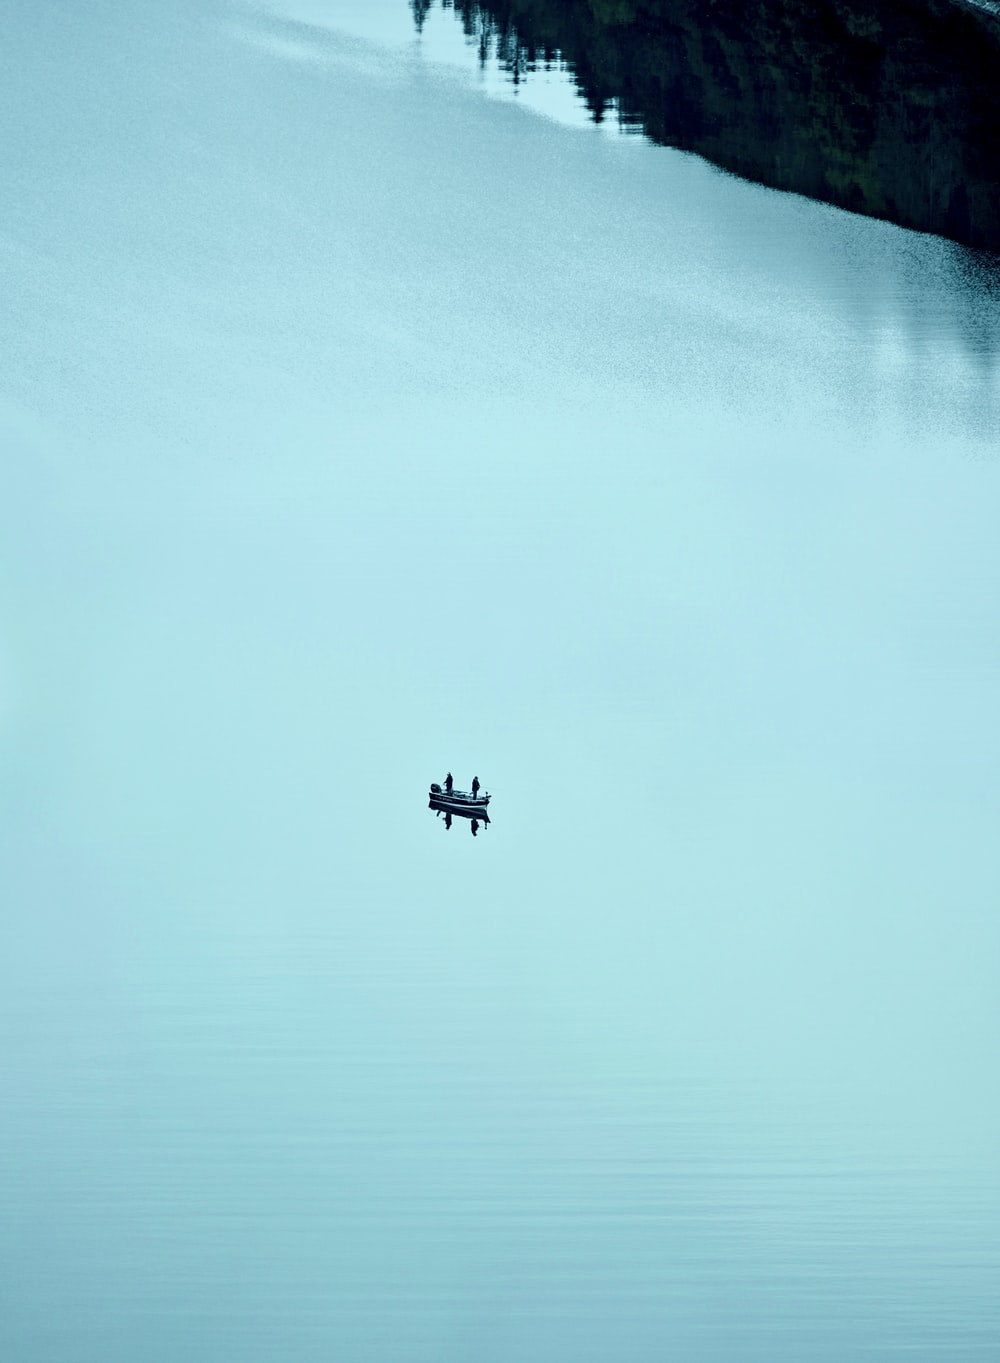 airplane flying over the sea during daytime